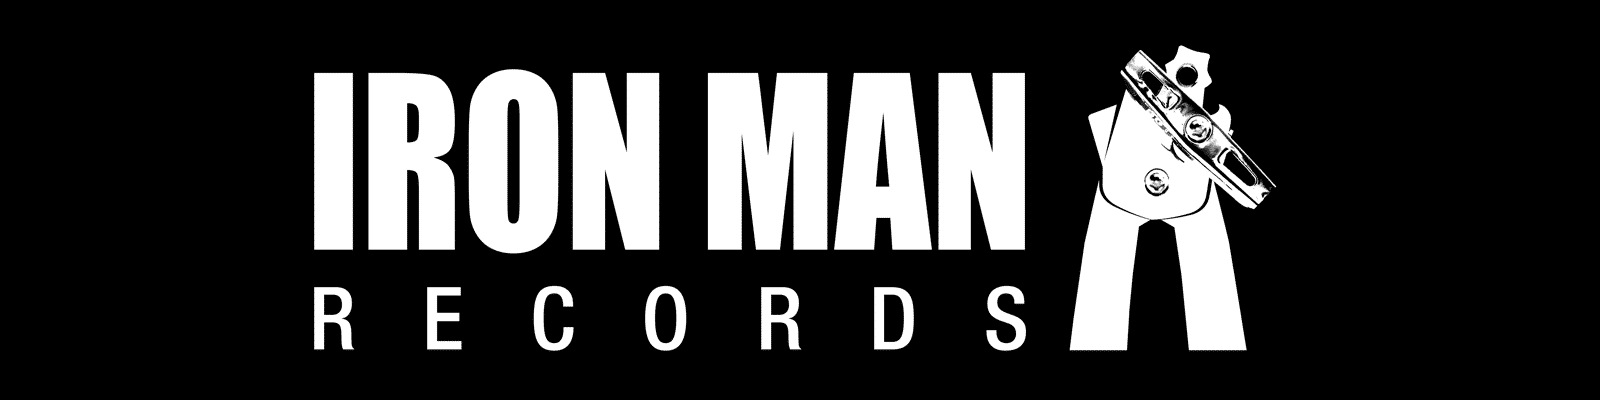 Iron Man Records